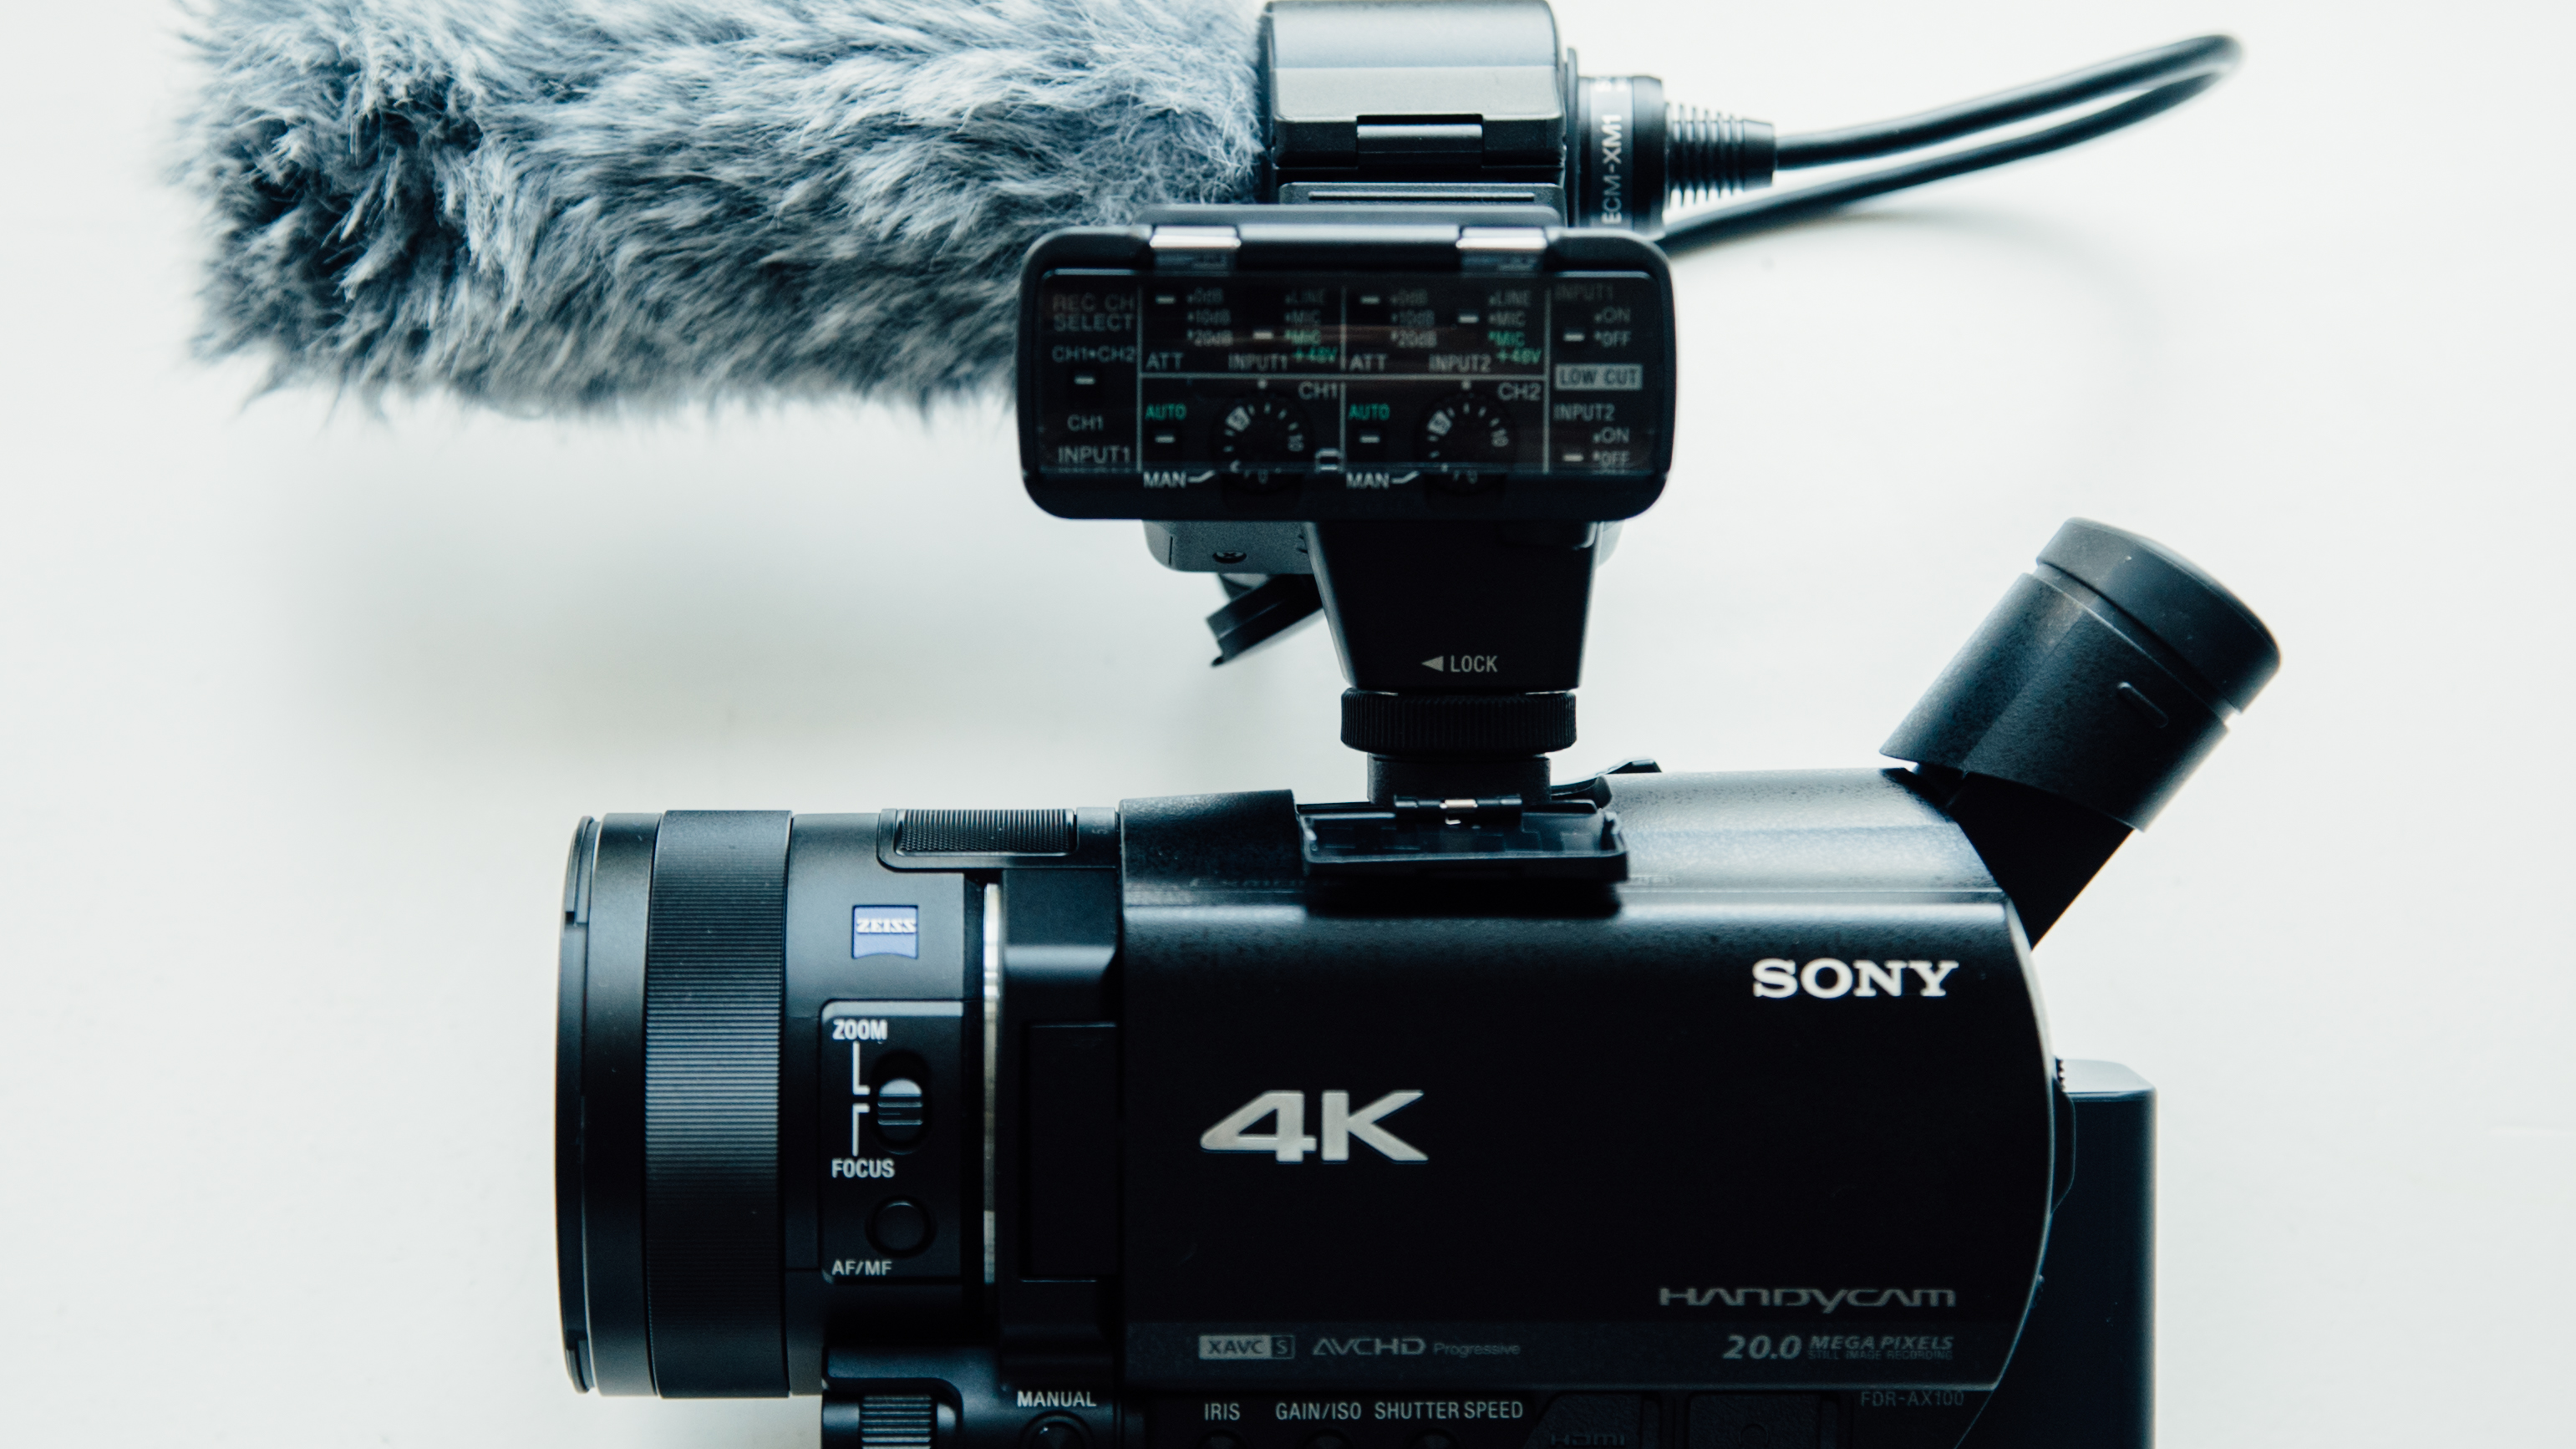 Sony AX100 Review - Powerful 4K Tool with New 100 Mbps Firmware